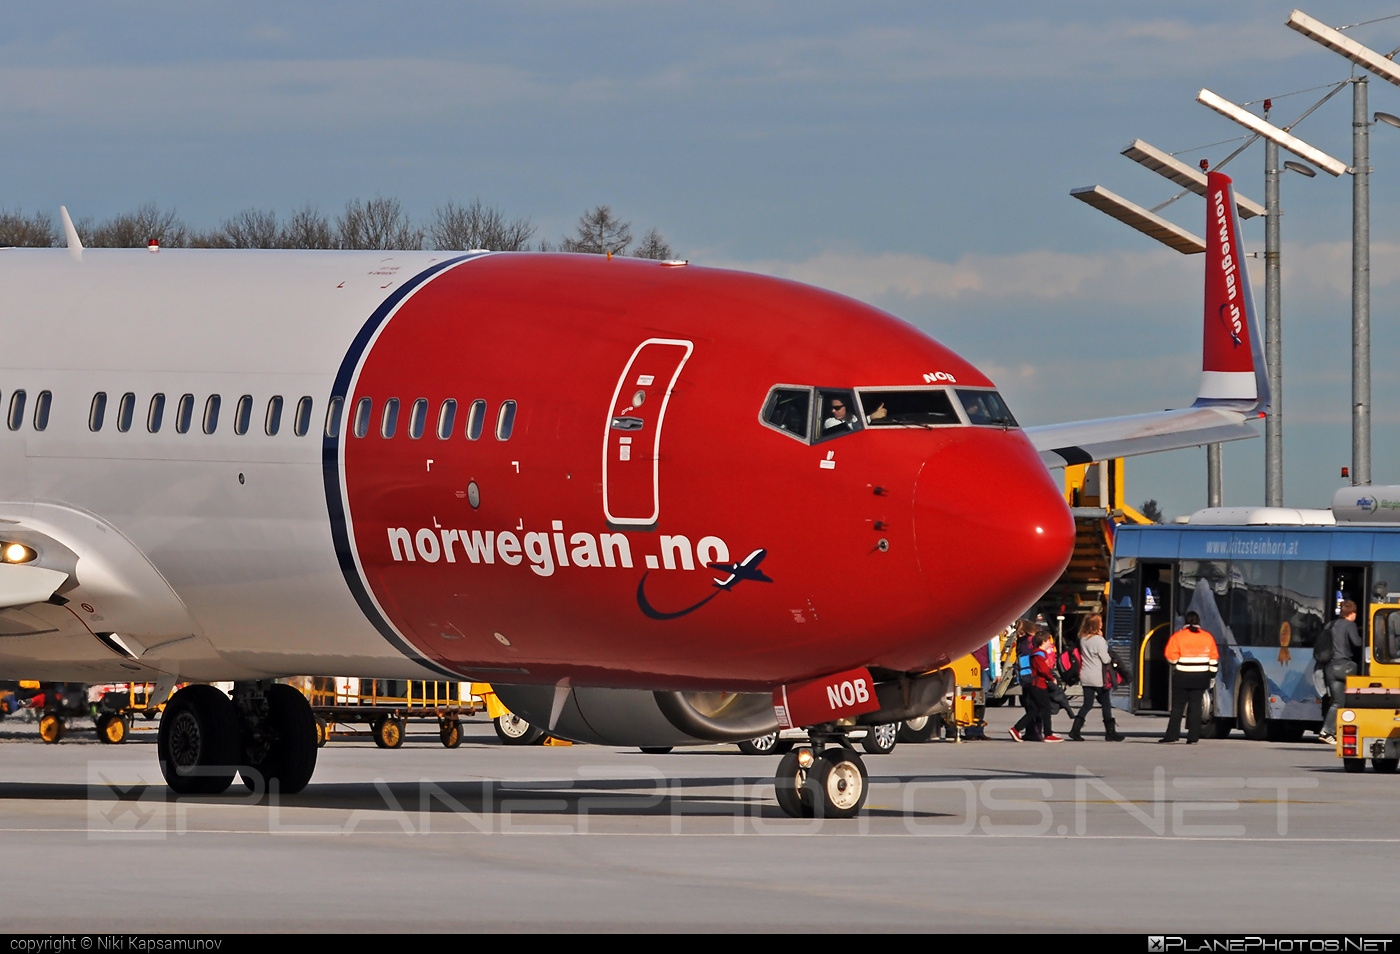 Boeing 737-800 - LN-NOB operated by Norwegian Air Shuttle #b737 #b737nextgen #b737ng #boeing #boeing737 #norwegian #norwegianair #norwegianairshuttle